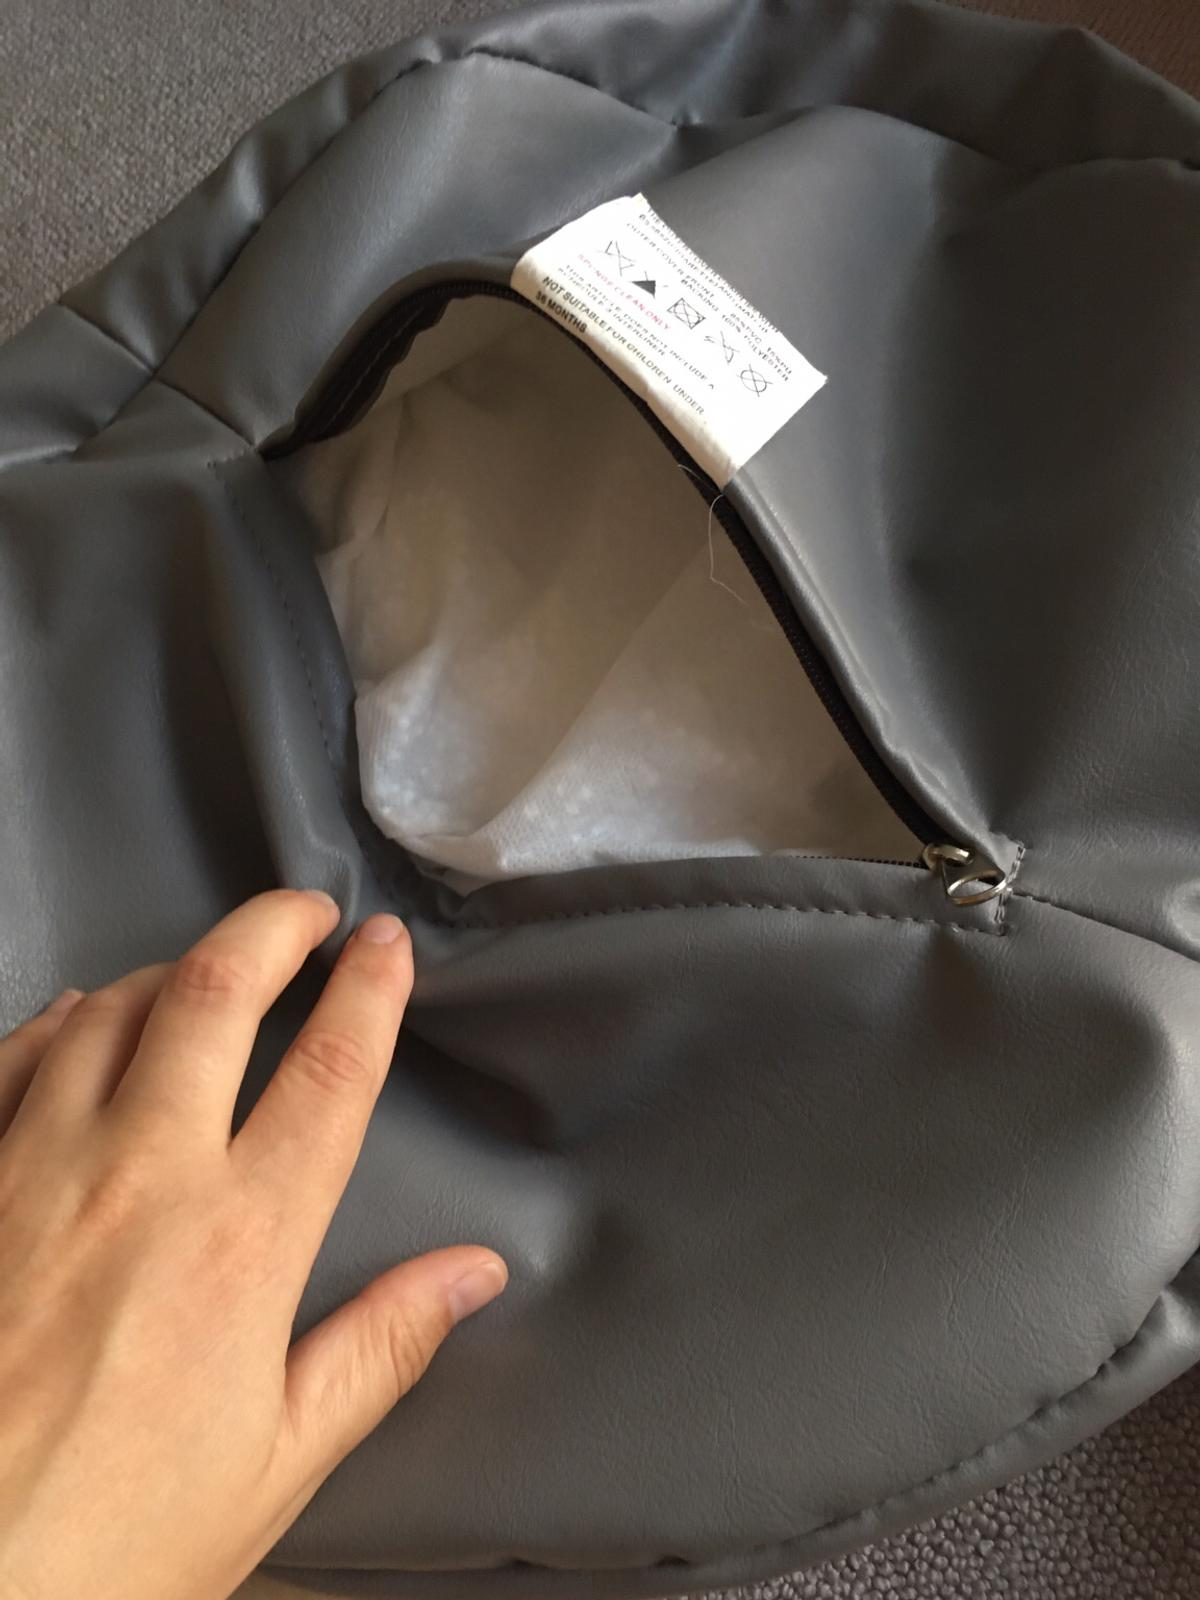 Fantastic Better Dreams Bean Bag In Rm12 London For 6 00 For Sale Unemploymentrelief Wooden Chair Designs For Living Room Unemploymentrelieforg